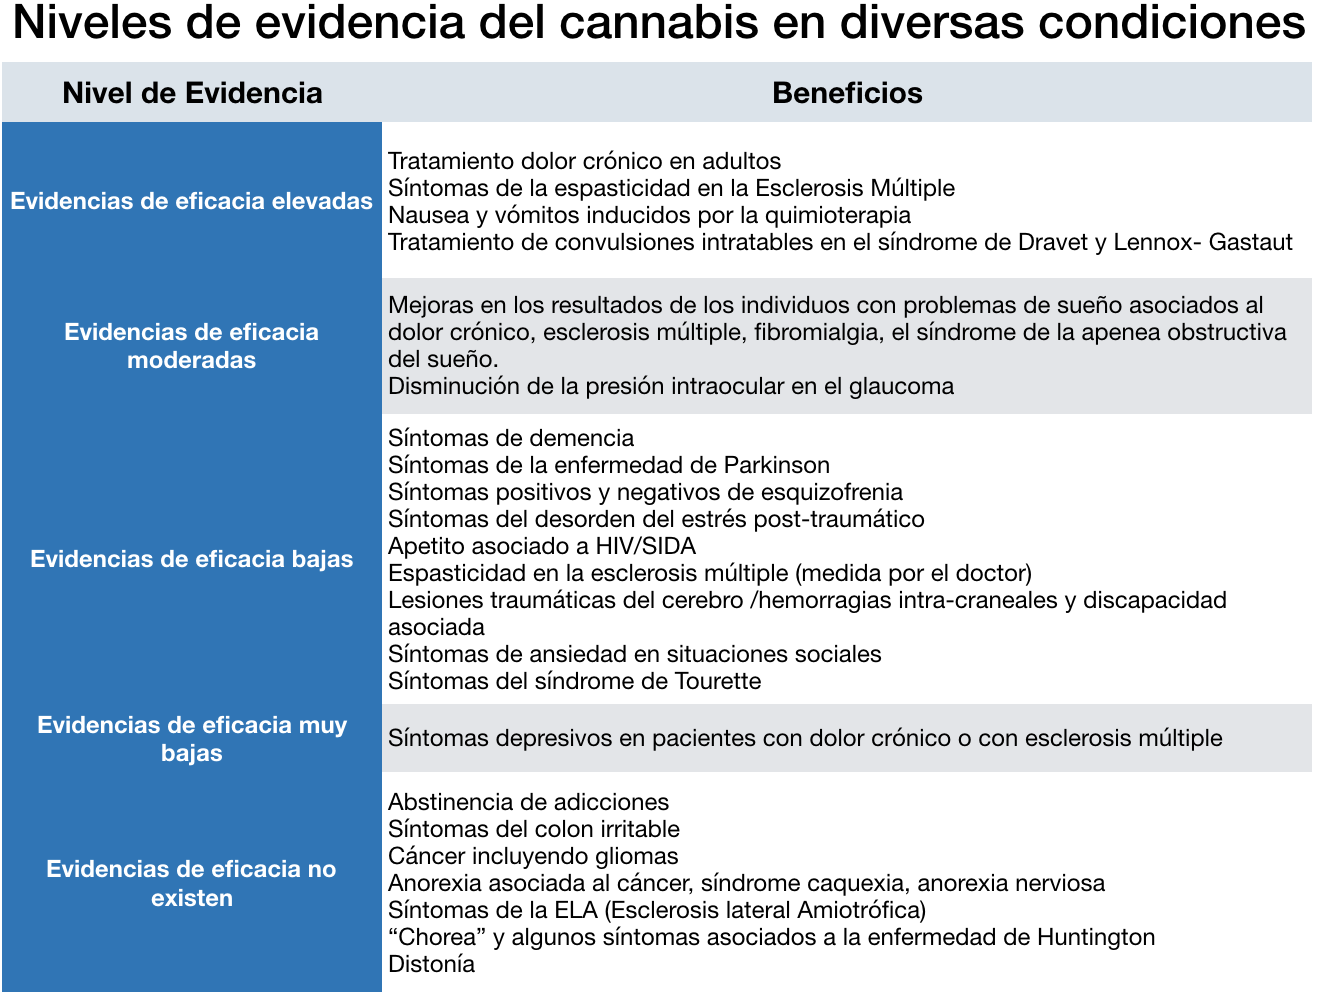 Referencia: MacCallum, C. A., & Russo, E. B. (2018). Practical considerations in medical cannabis administration and dosing.  European Journal of Internal Medicine ,  49  (March 2018), 12–19. https://doi.org/10.1016/j.ejim.2018.01.004